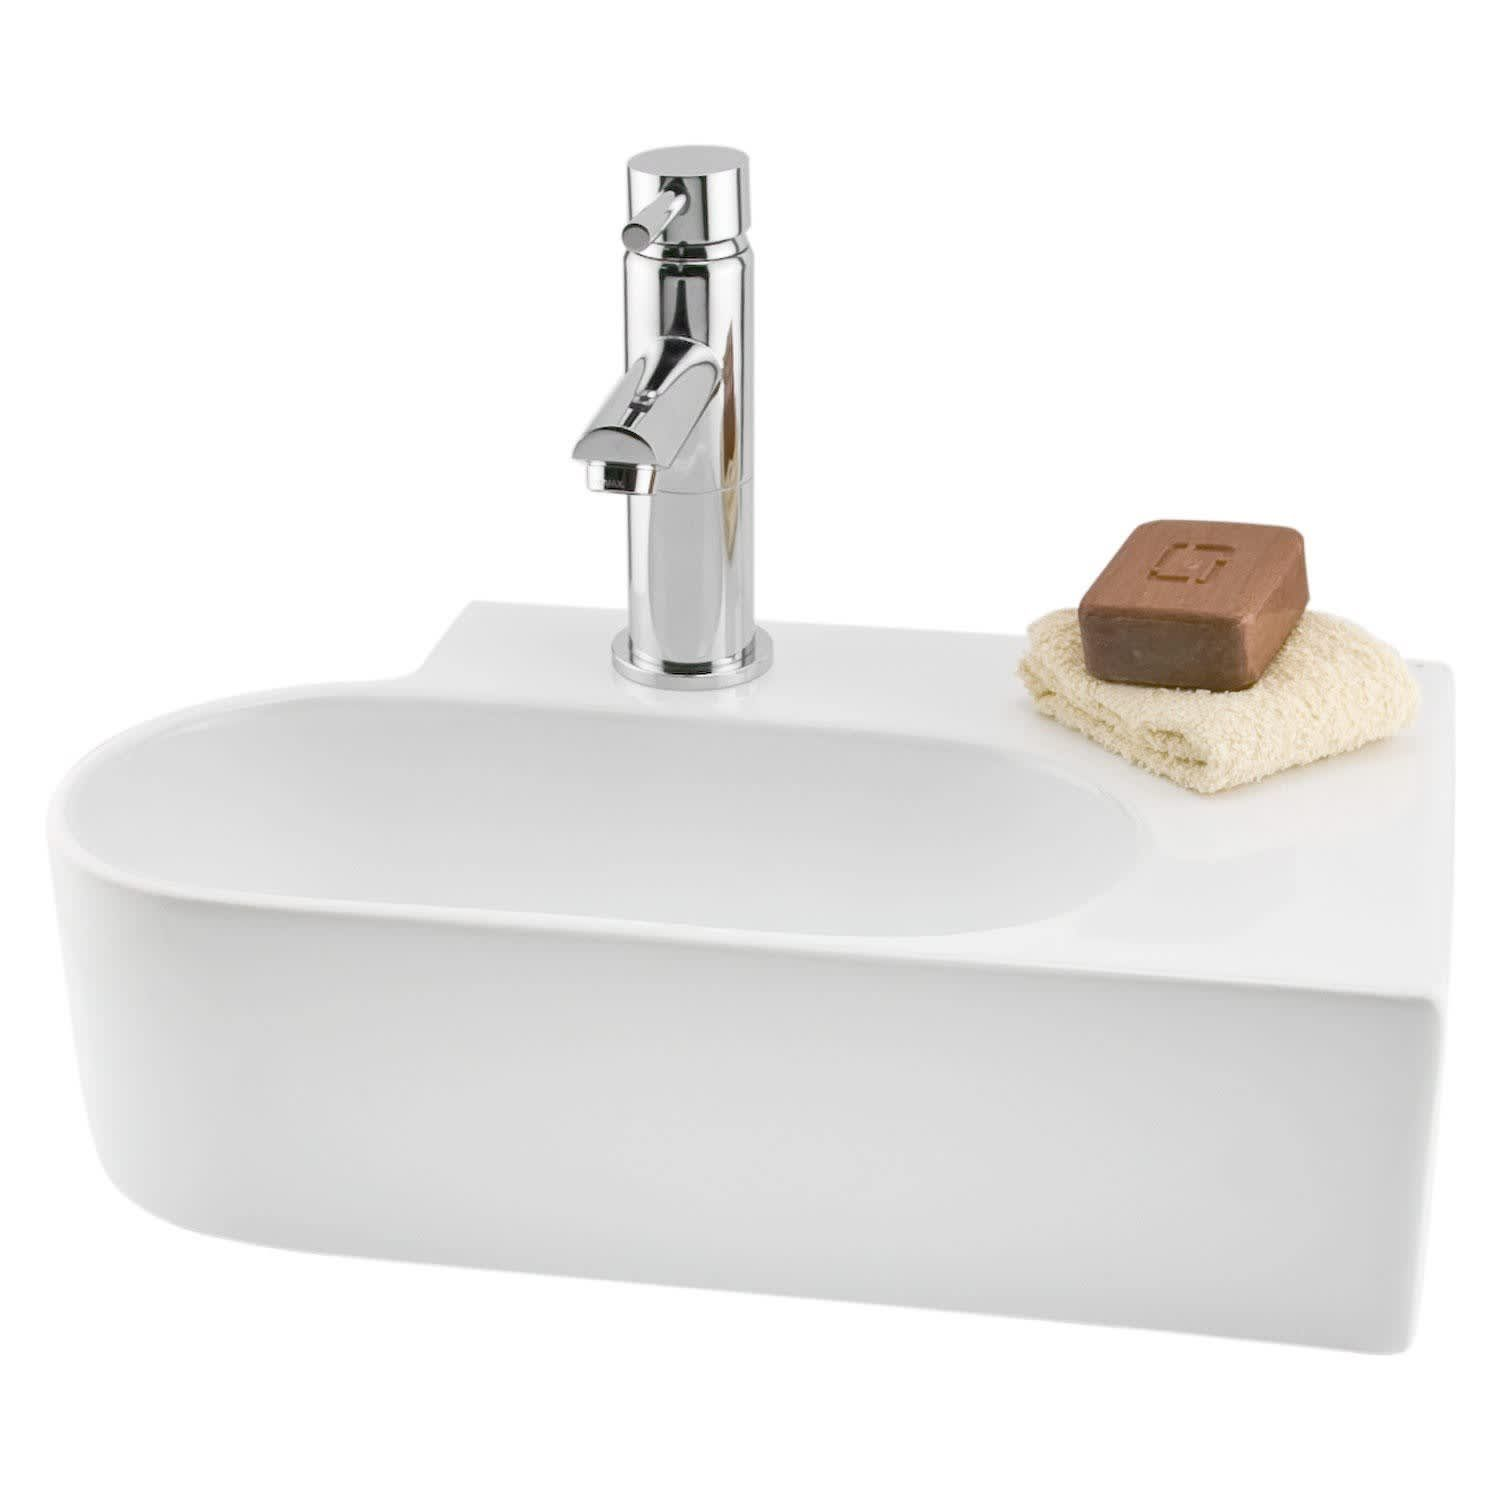 Small Vanities & Sinks You Can Squeeze Into Even the ...